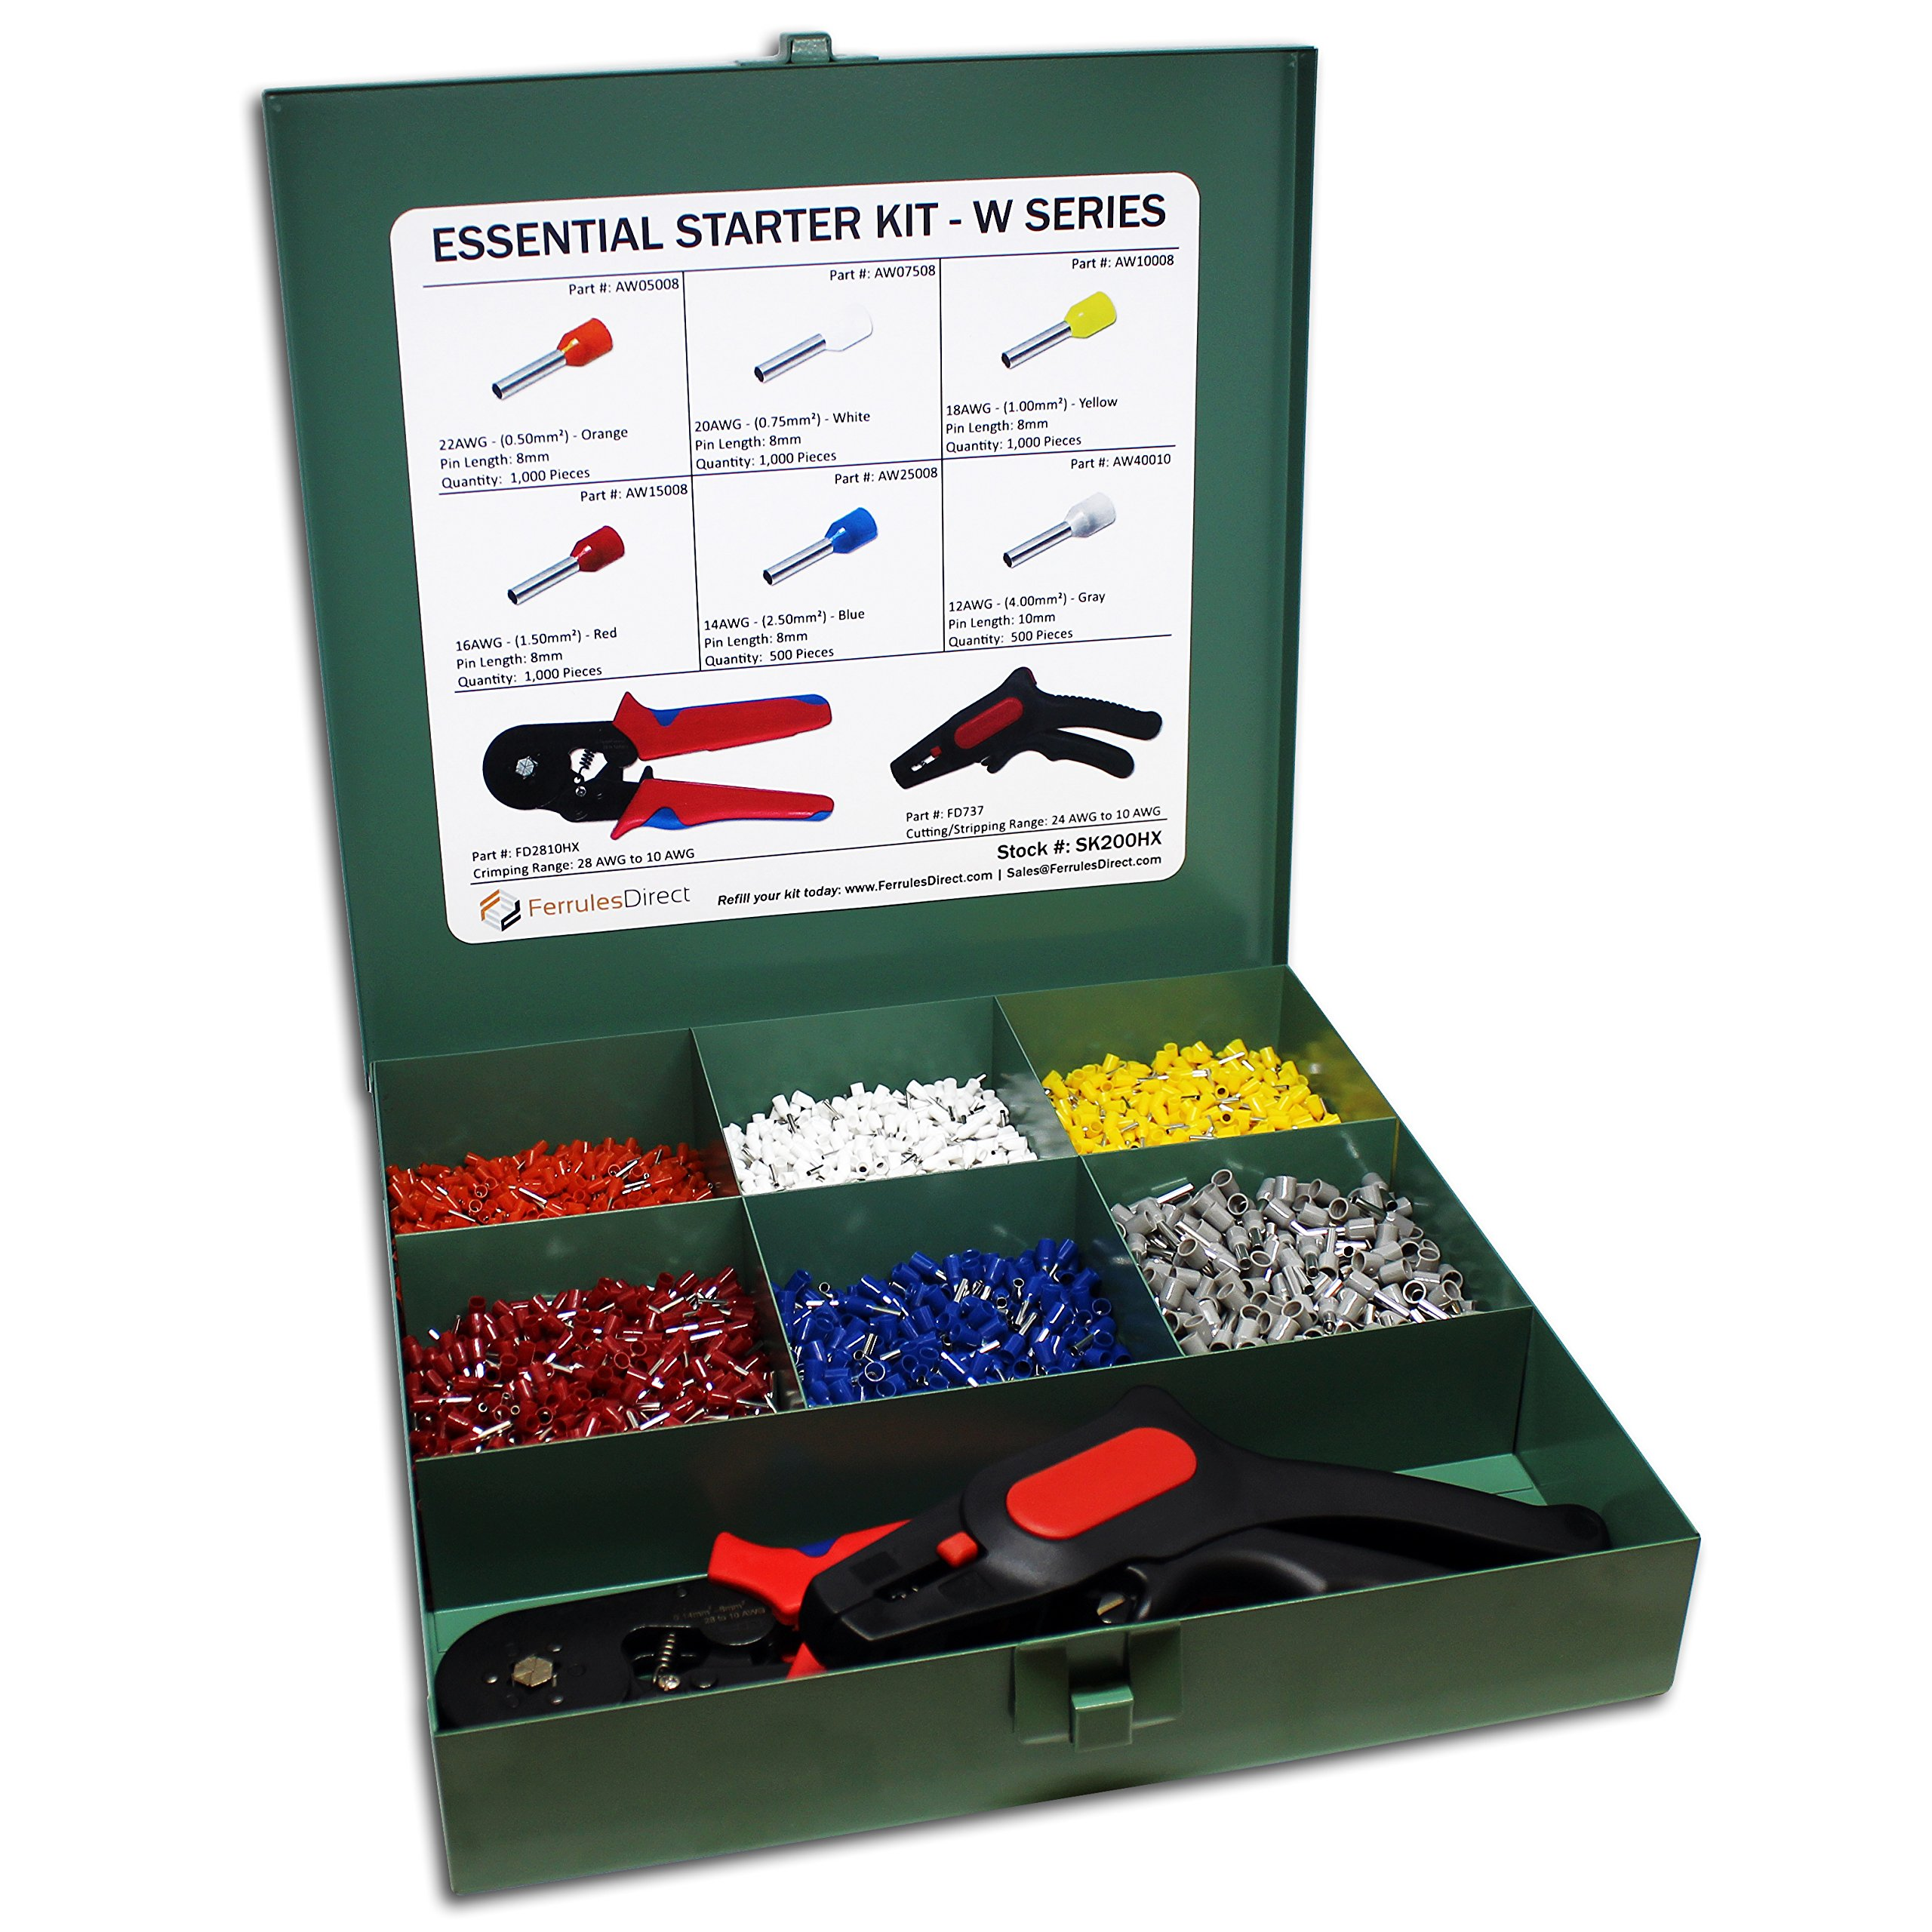 5000 Piece Wire Ferrules Essential Kit with Hexagonal Profile Crimping Tool and Cutting/Stripping Tool-22 AWG to 12 AWG Insulated Connectors-SK200HX